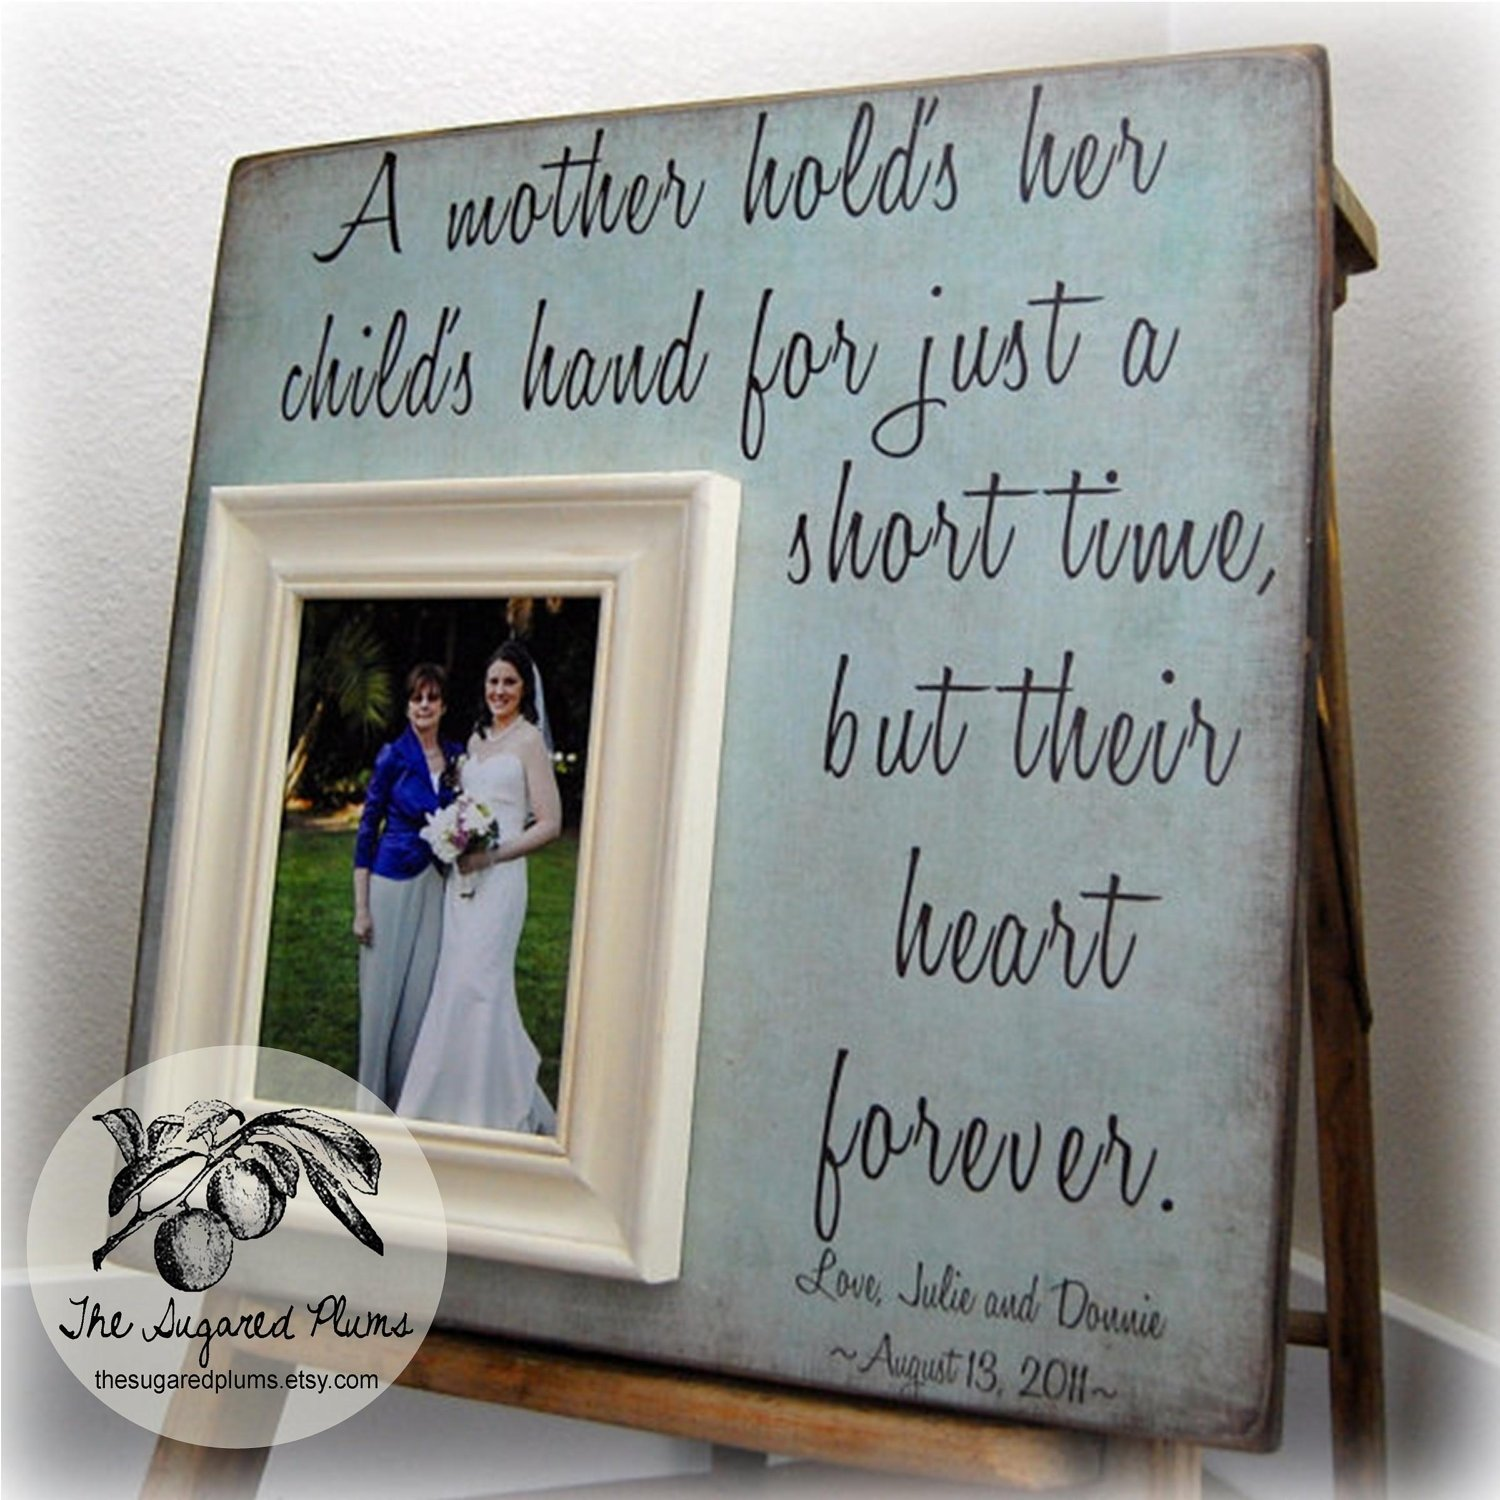 10 Pretty Wedding Gift Ideas From Parents best mother of the bride gifts personalized picture frame a mother 3 2020